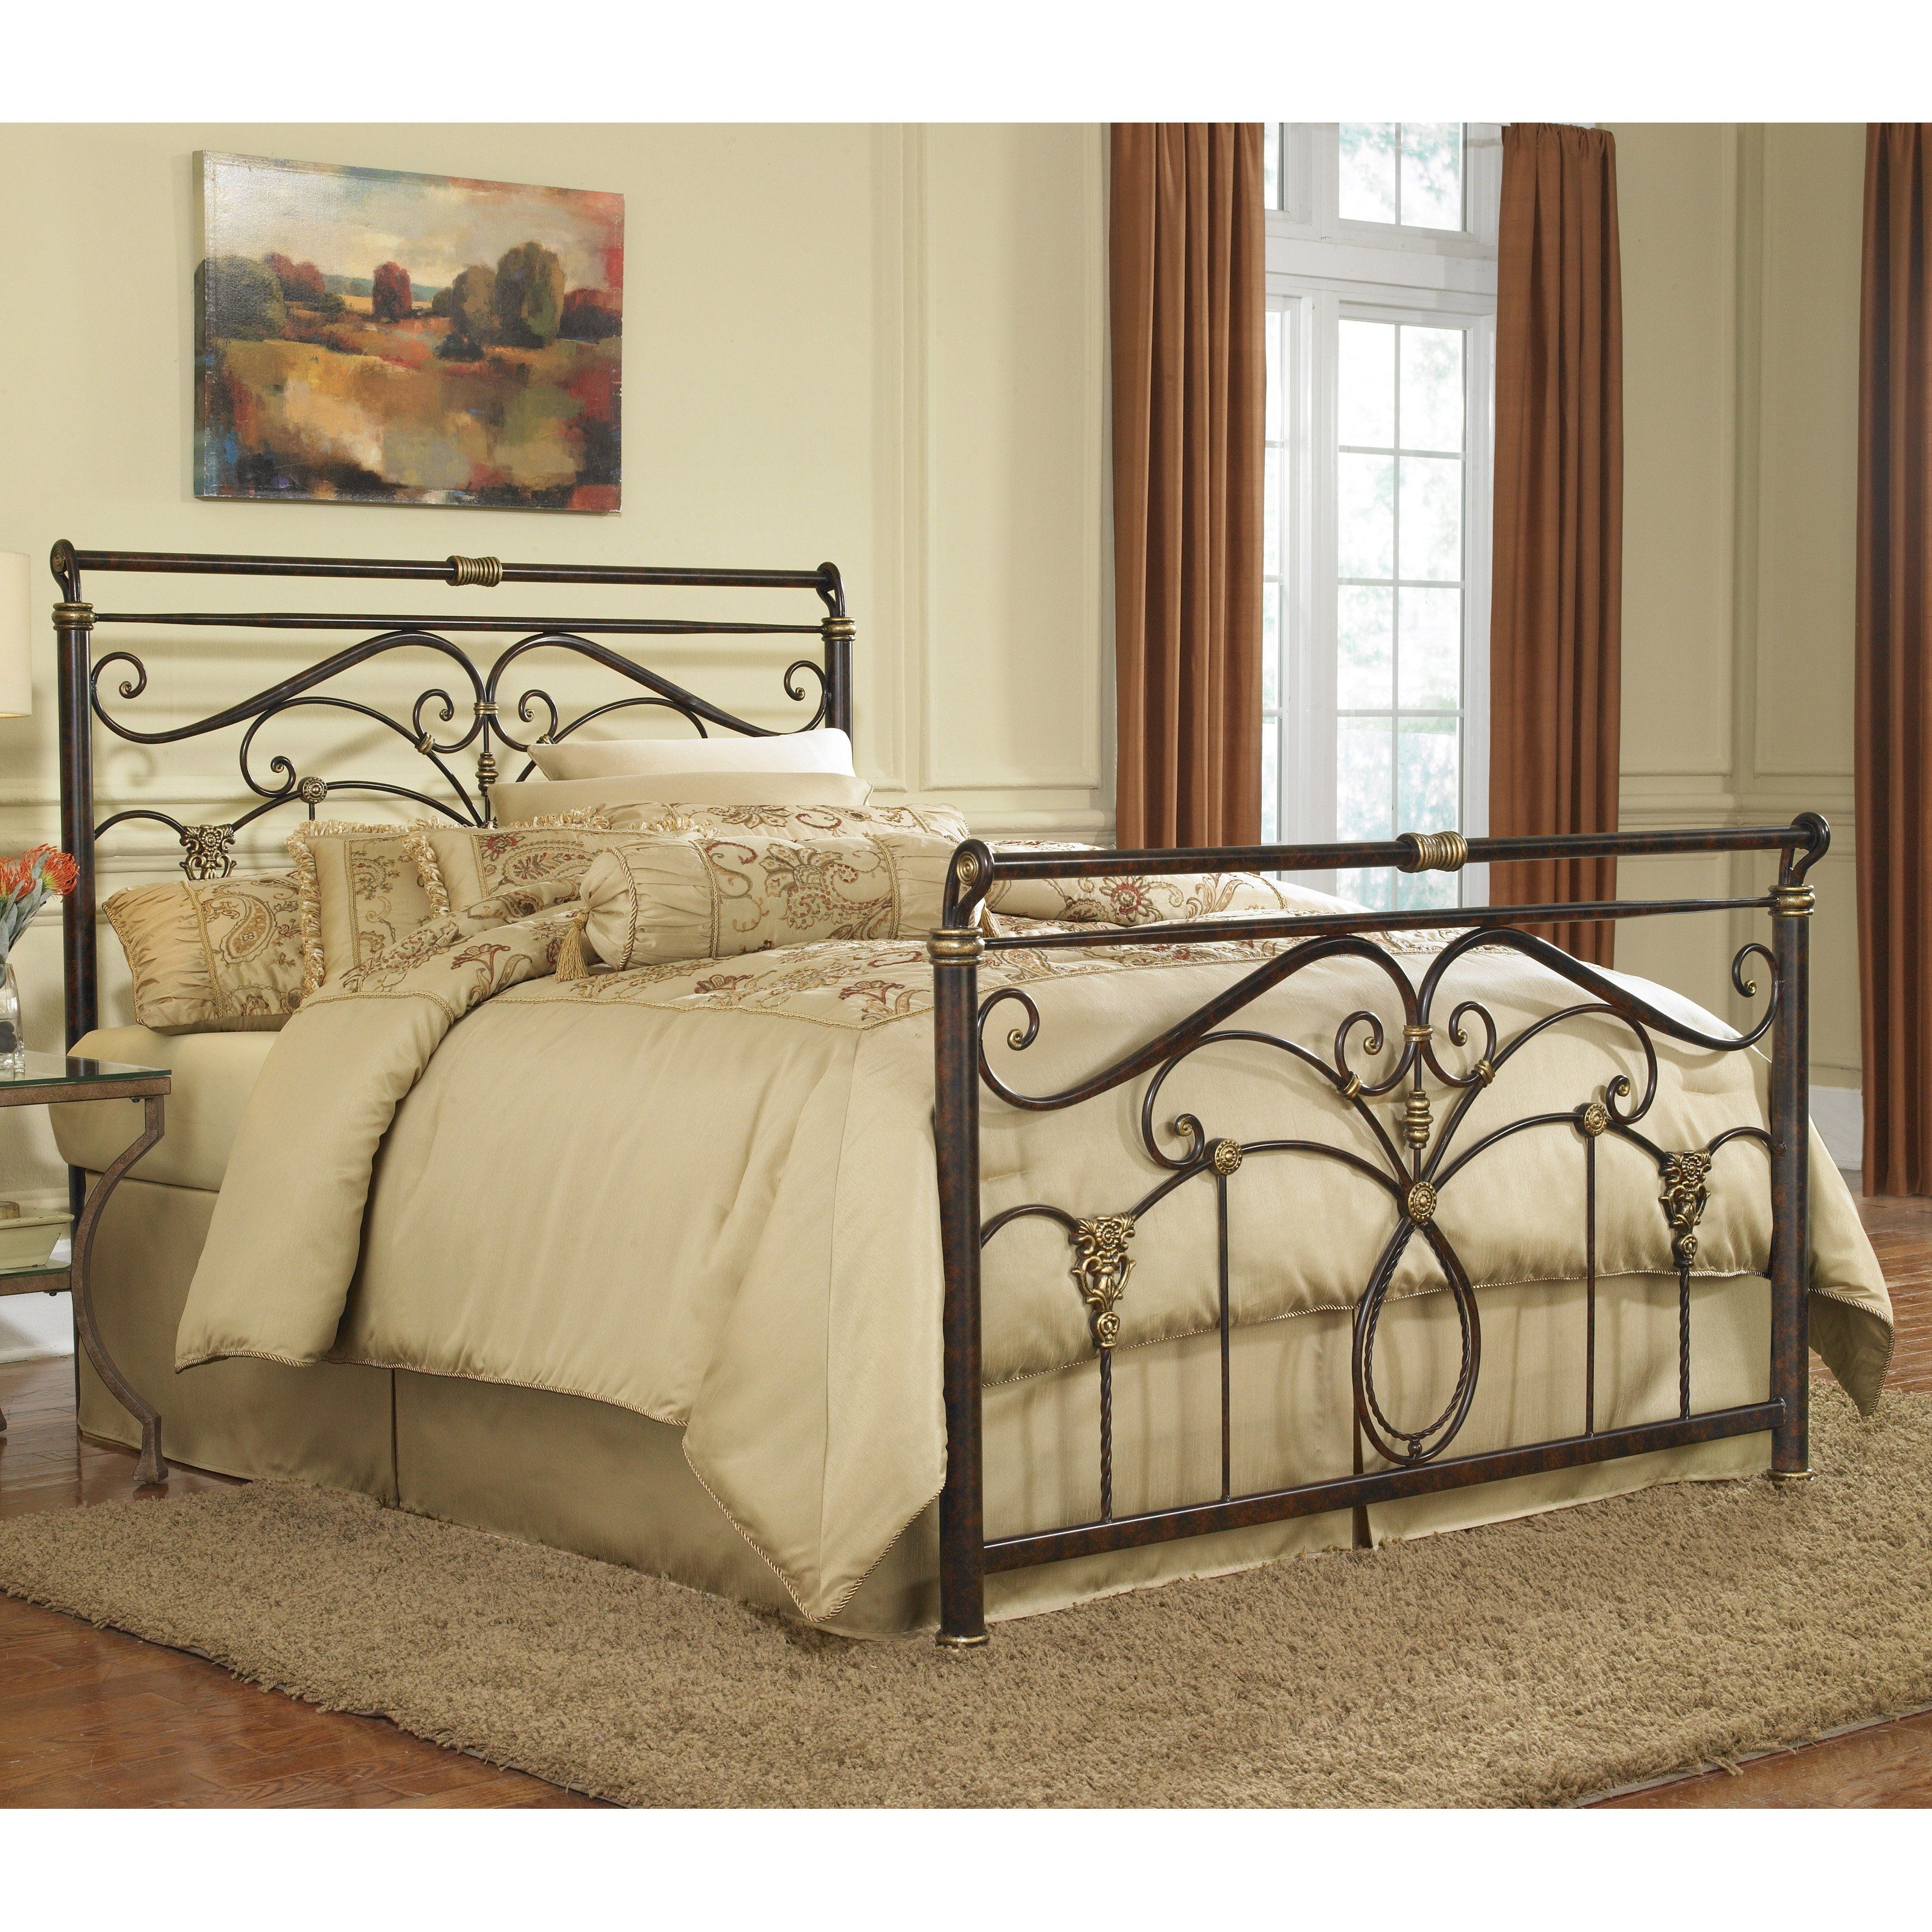 Have To Have It Lucinda Sleigh Bed 276 01 Hayneedle Bed Styling Iron Bed Sleigh Beds